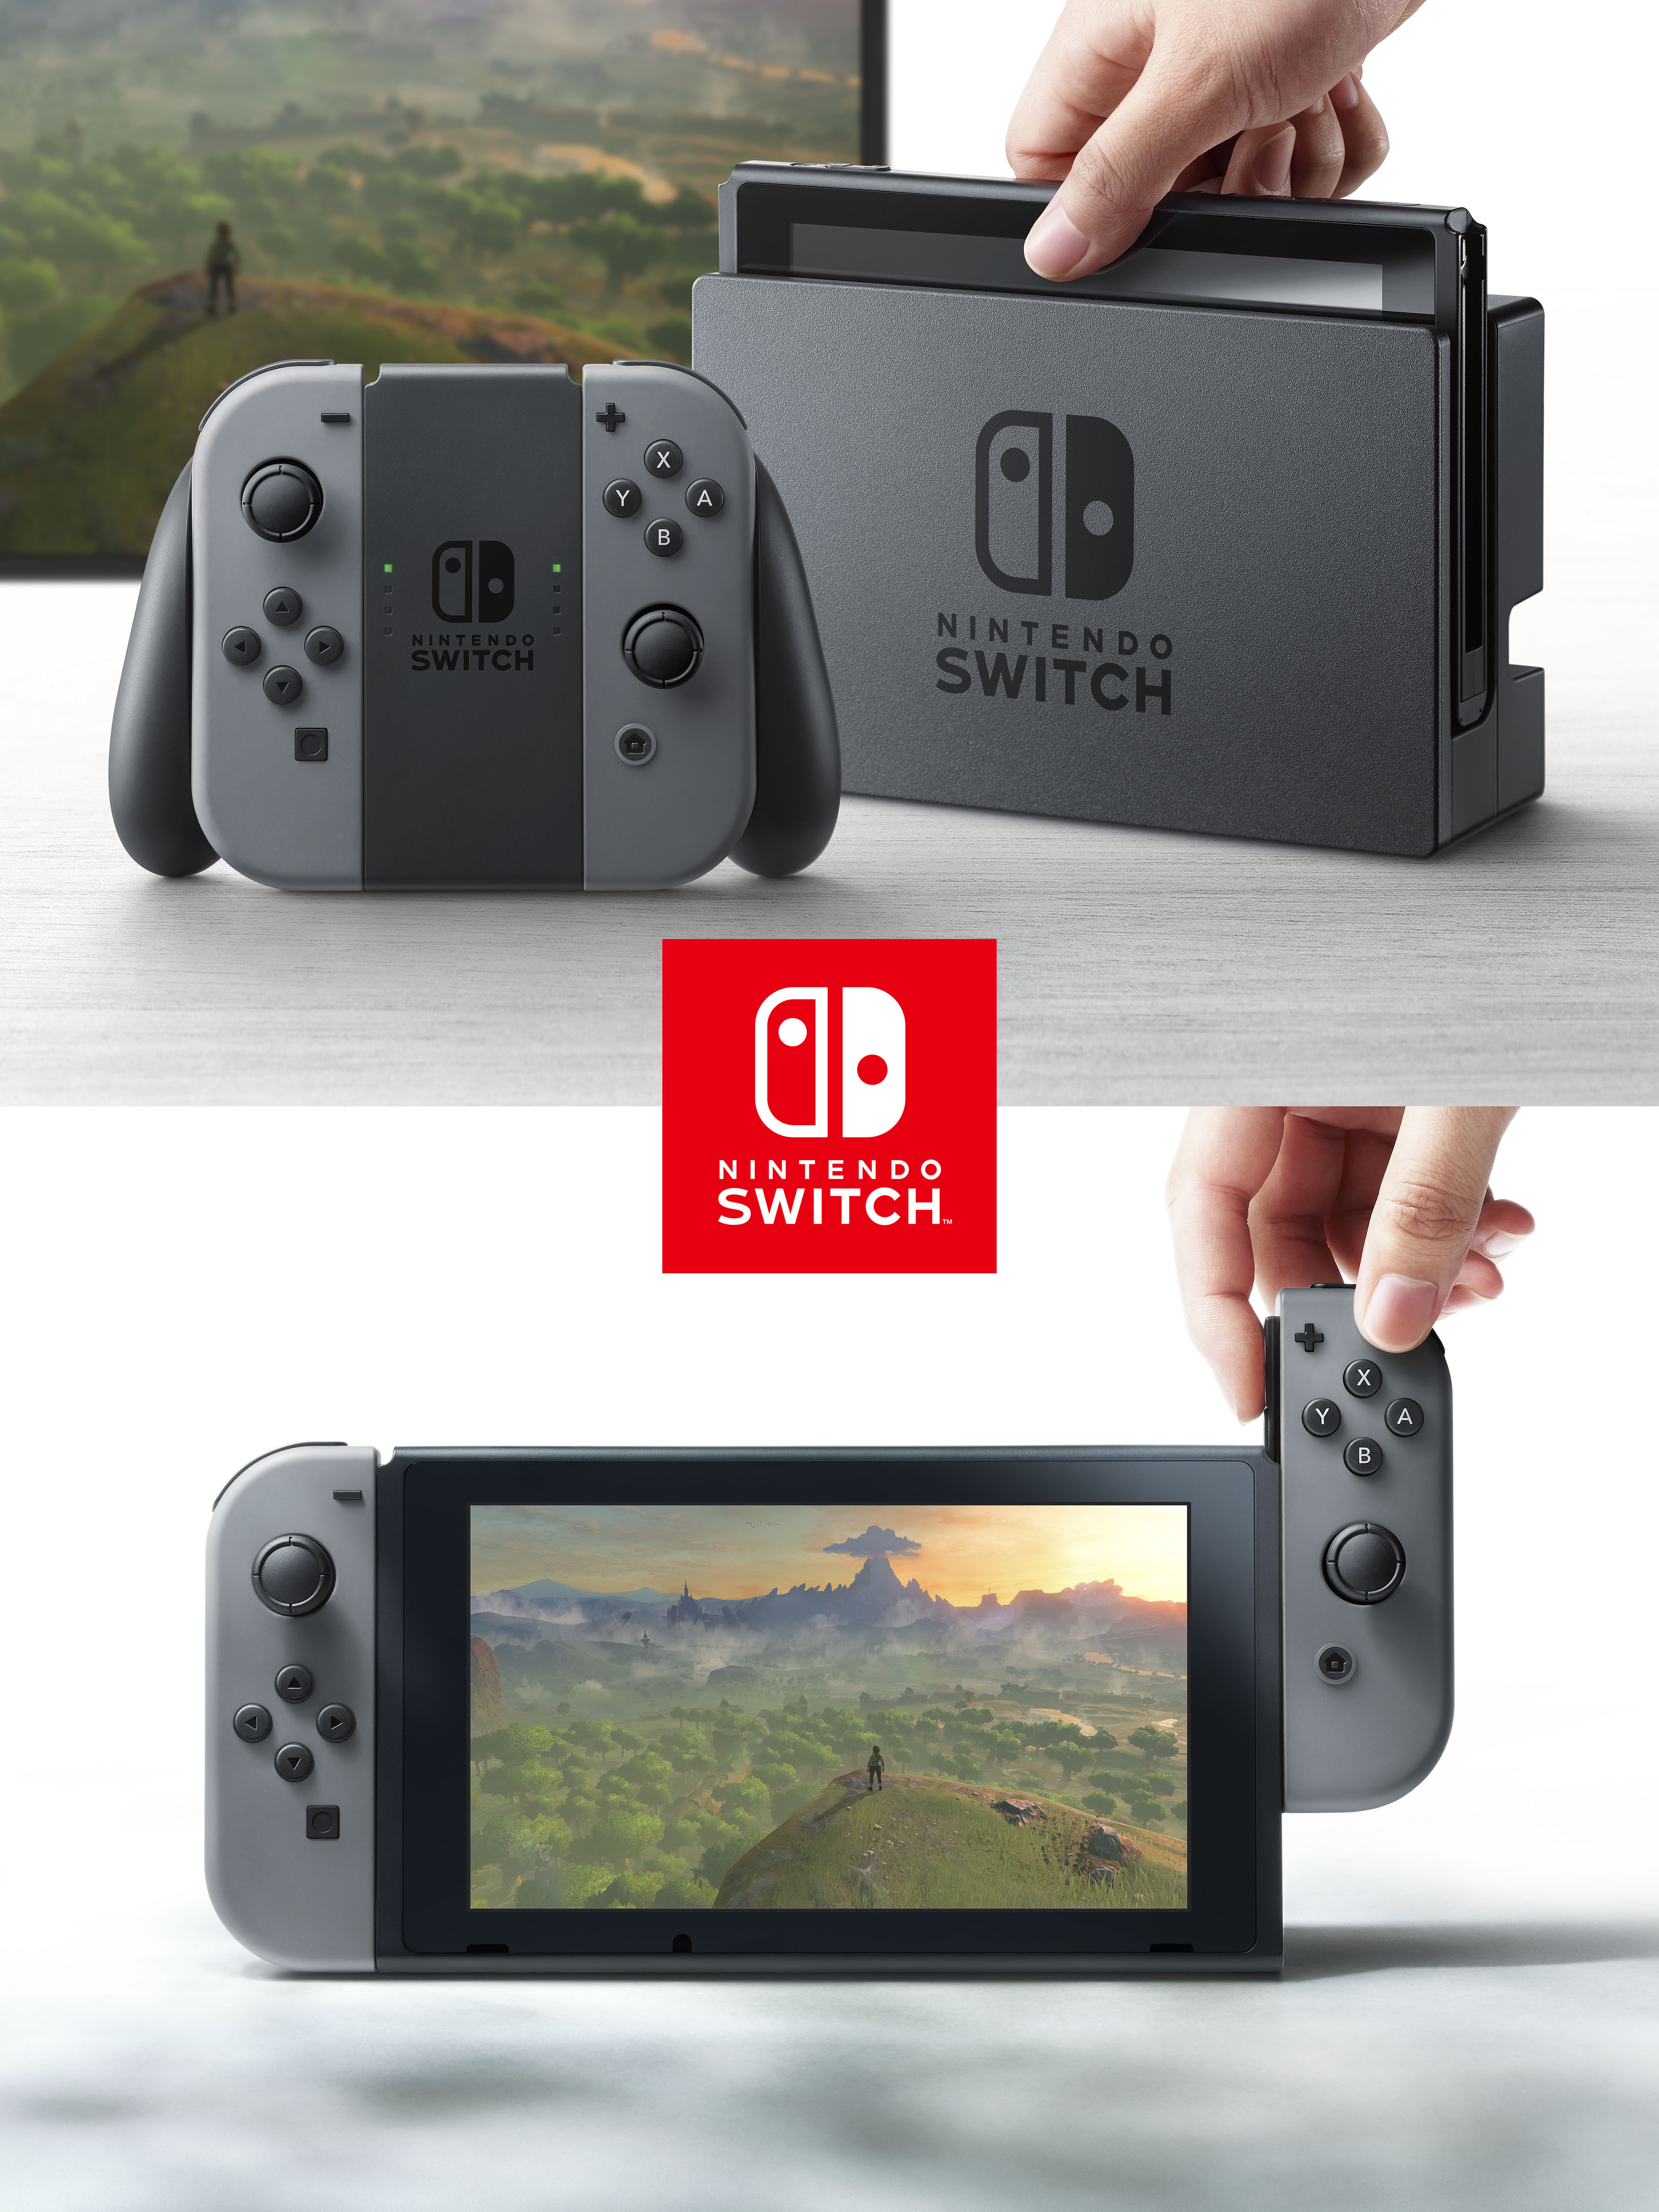 Nintendo Switch World Premiere Demonstrates New Entertainment ...